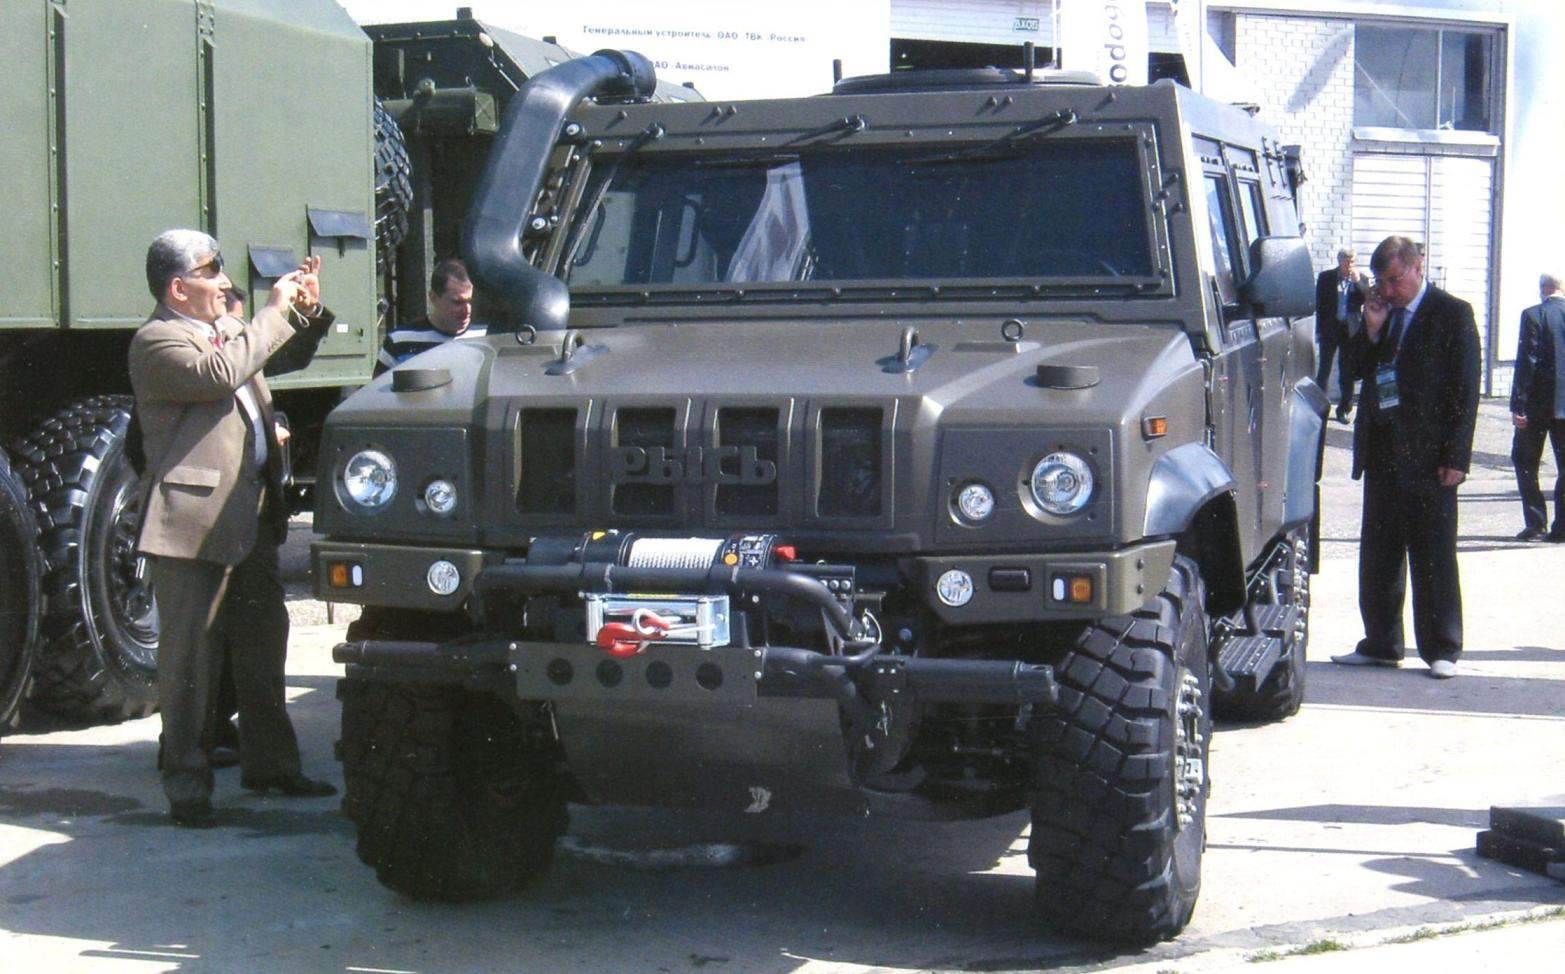 ARMORED CAR IVECO UNDER THE BRAND NAME